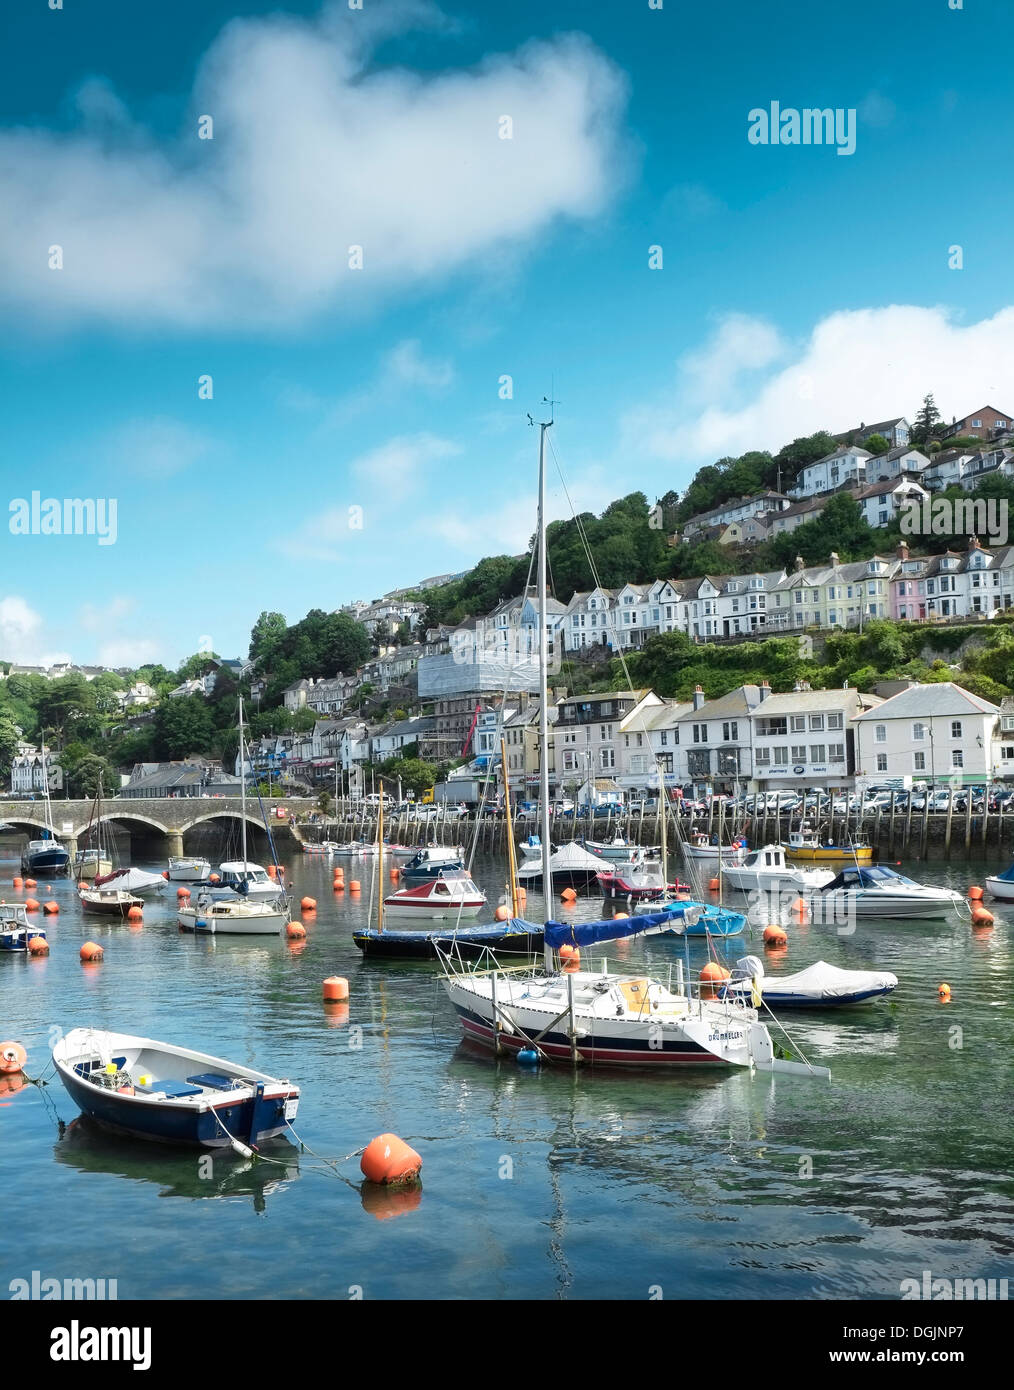 Boats moored in the harbour at Looe in Cornwall. - Stock Image